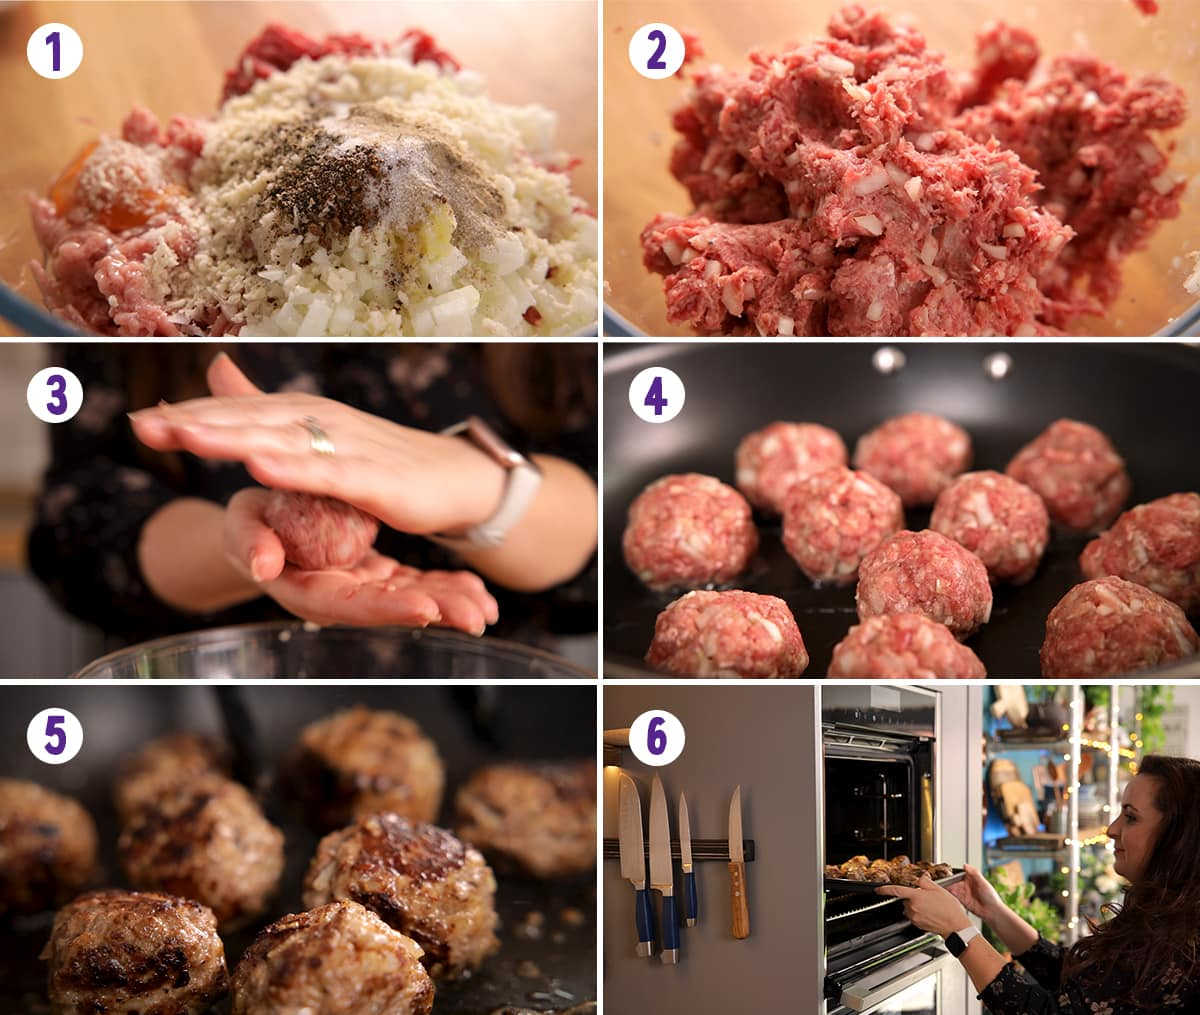 6 image collage showing how to make the meatballs for Swedish meatballs